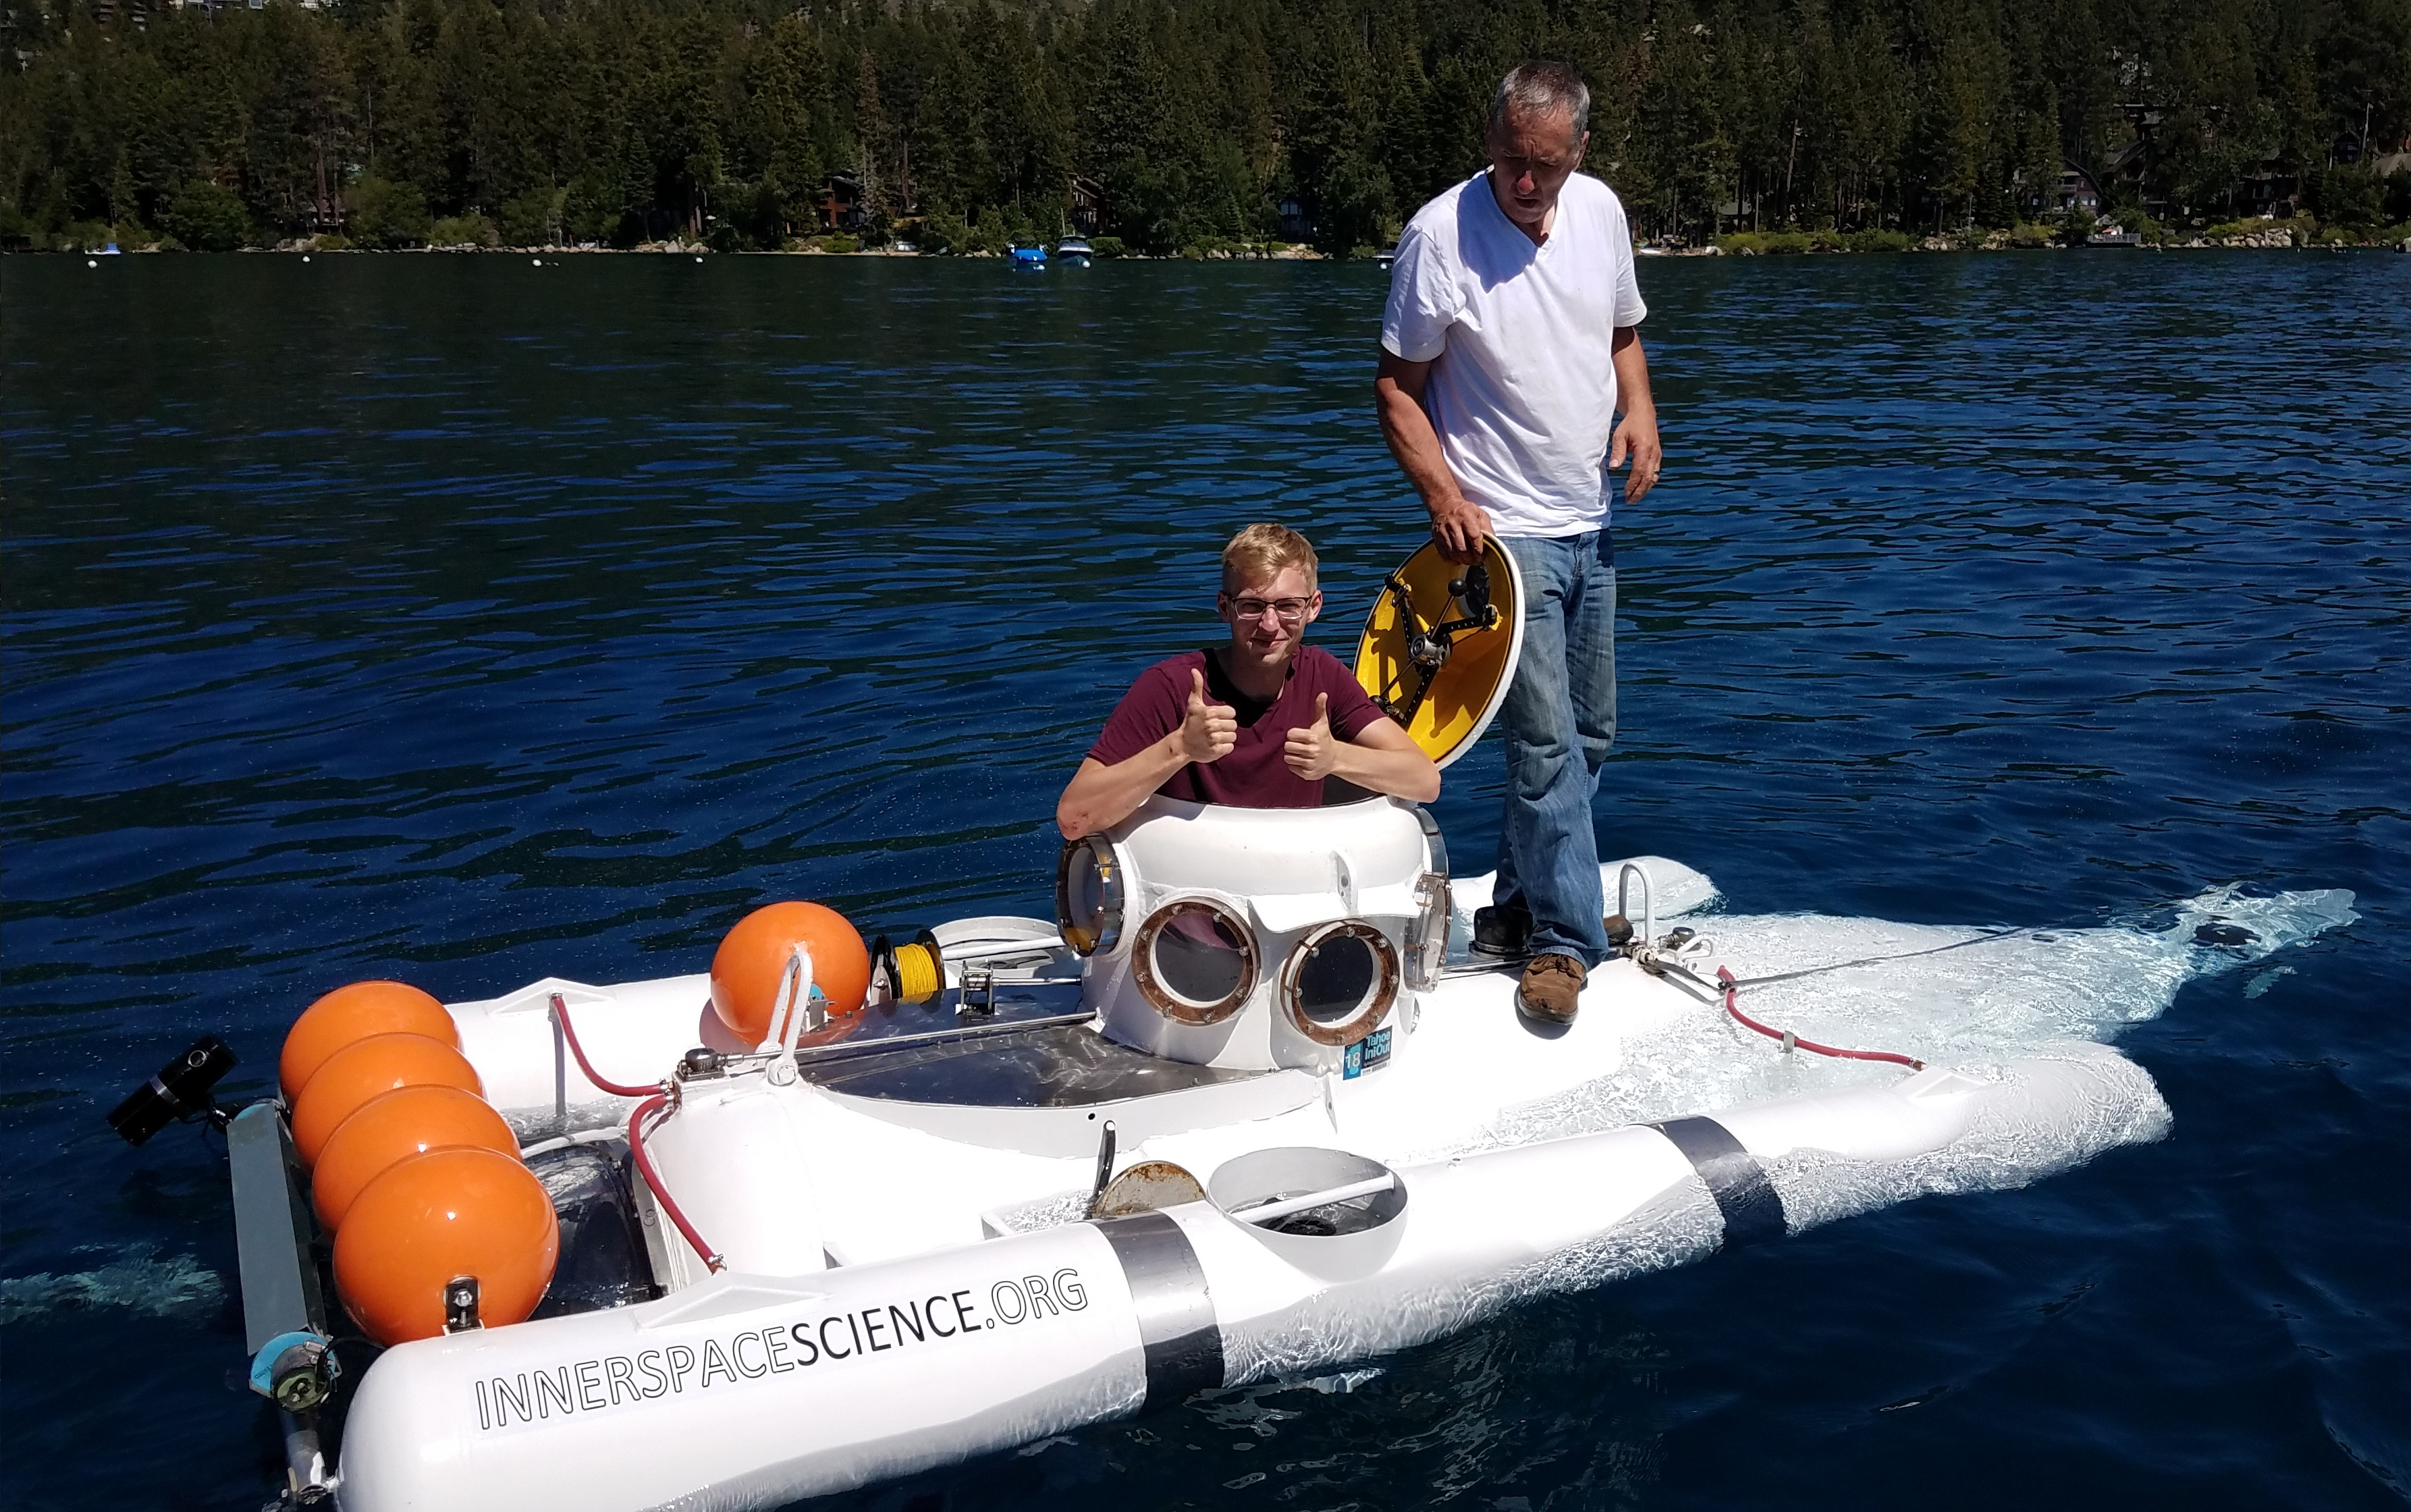 Education intern Noah tests a submarine in Lake Tahoe